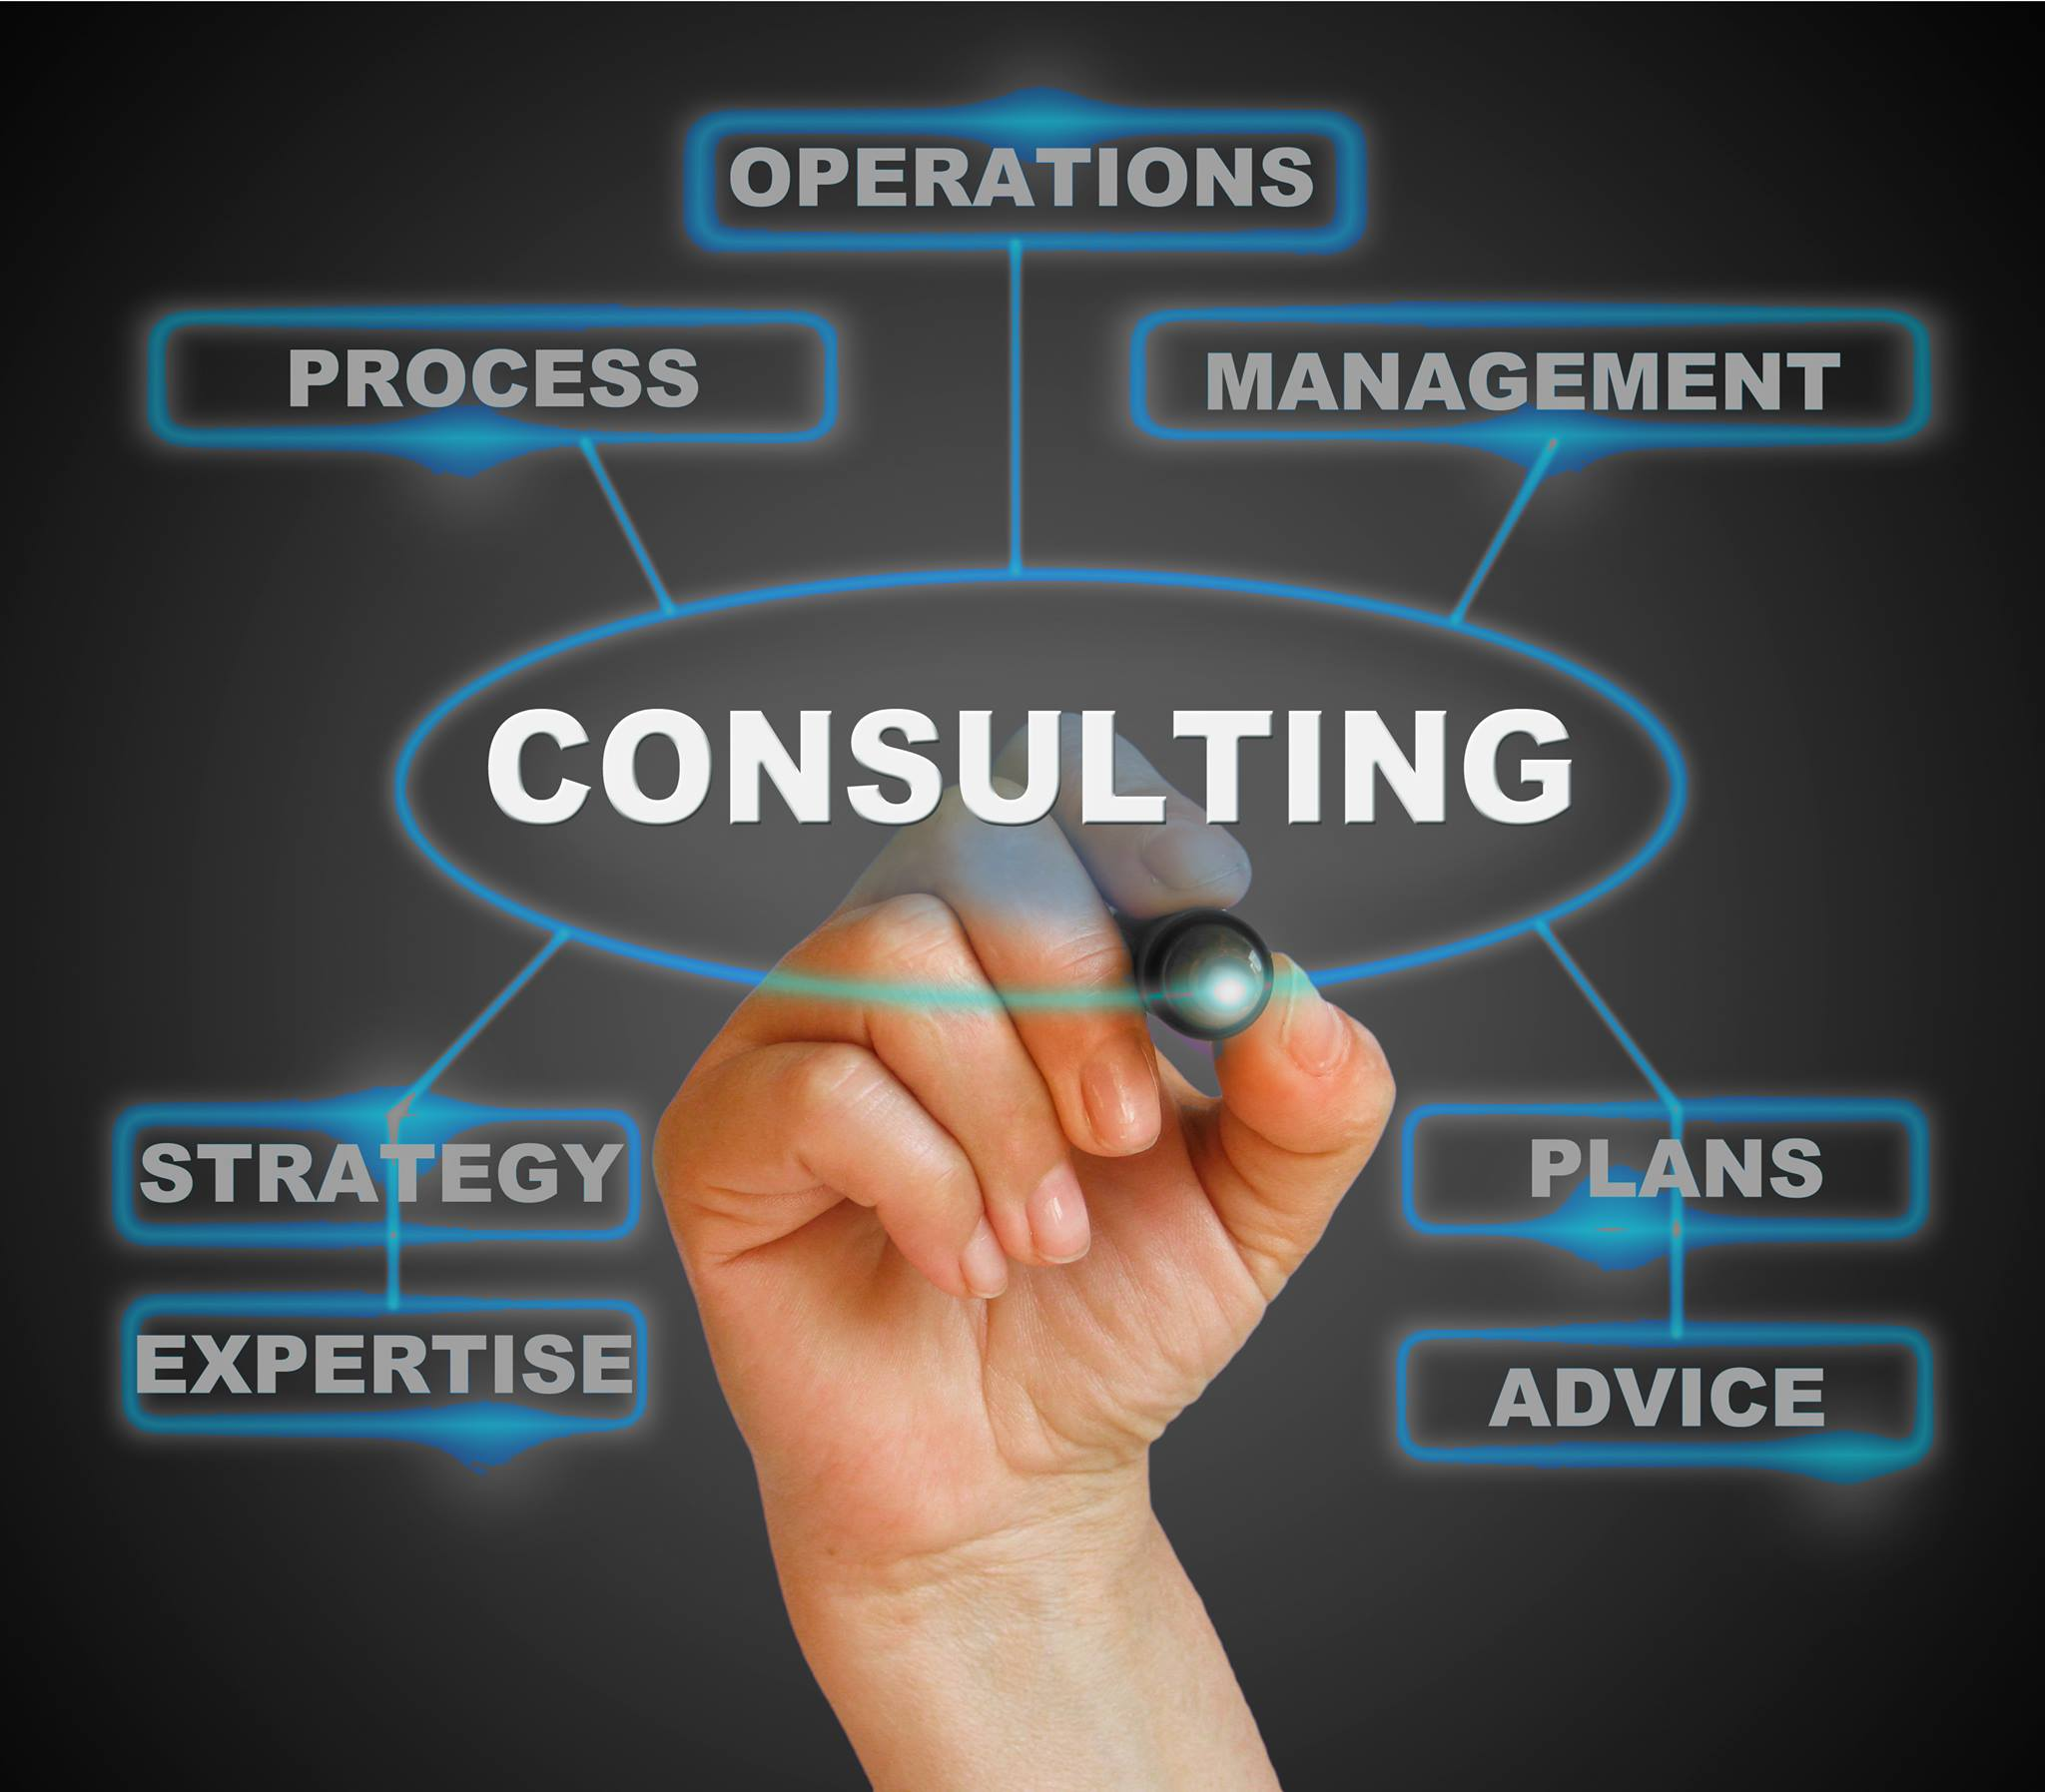 Consulting is Made Up of Many Important Pieces